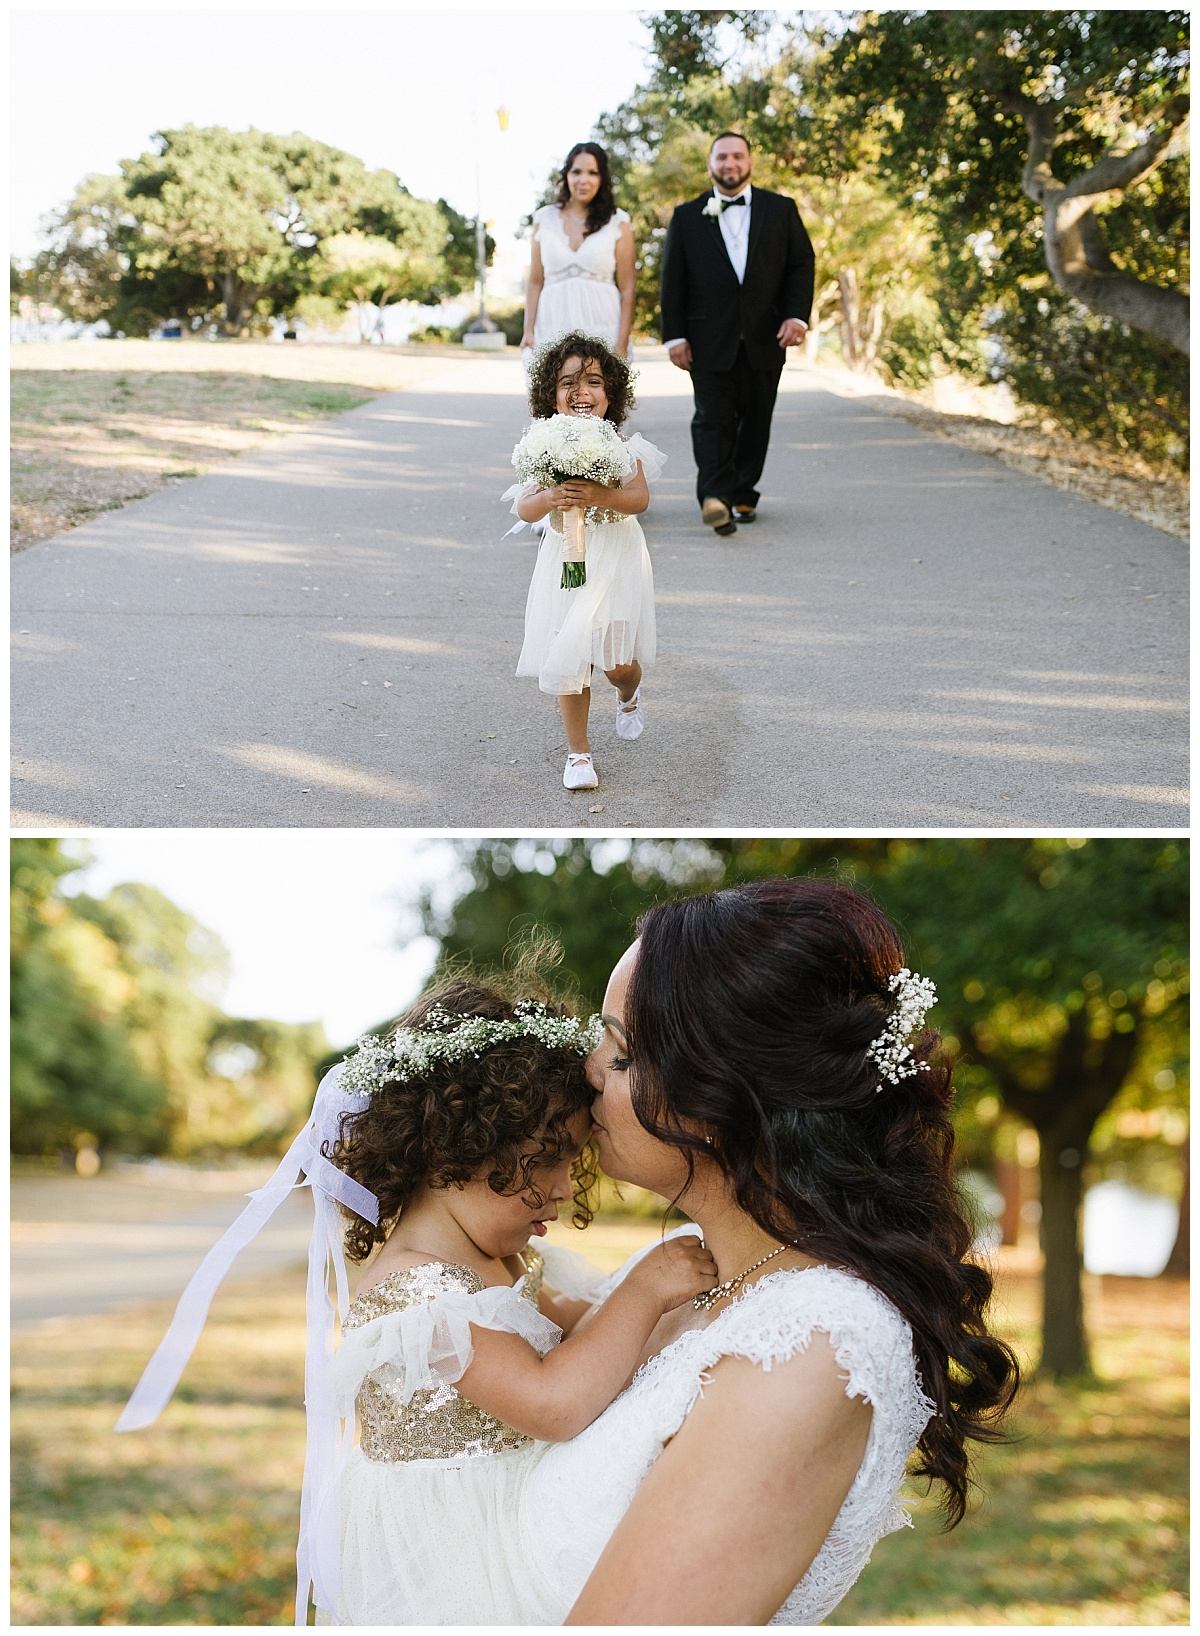 Shauna-Manuel-Lake-Merritt-Wedding_0003